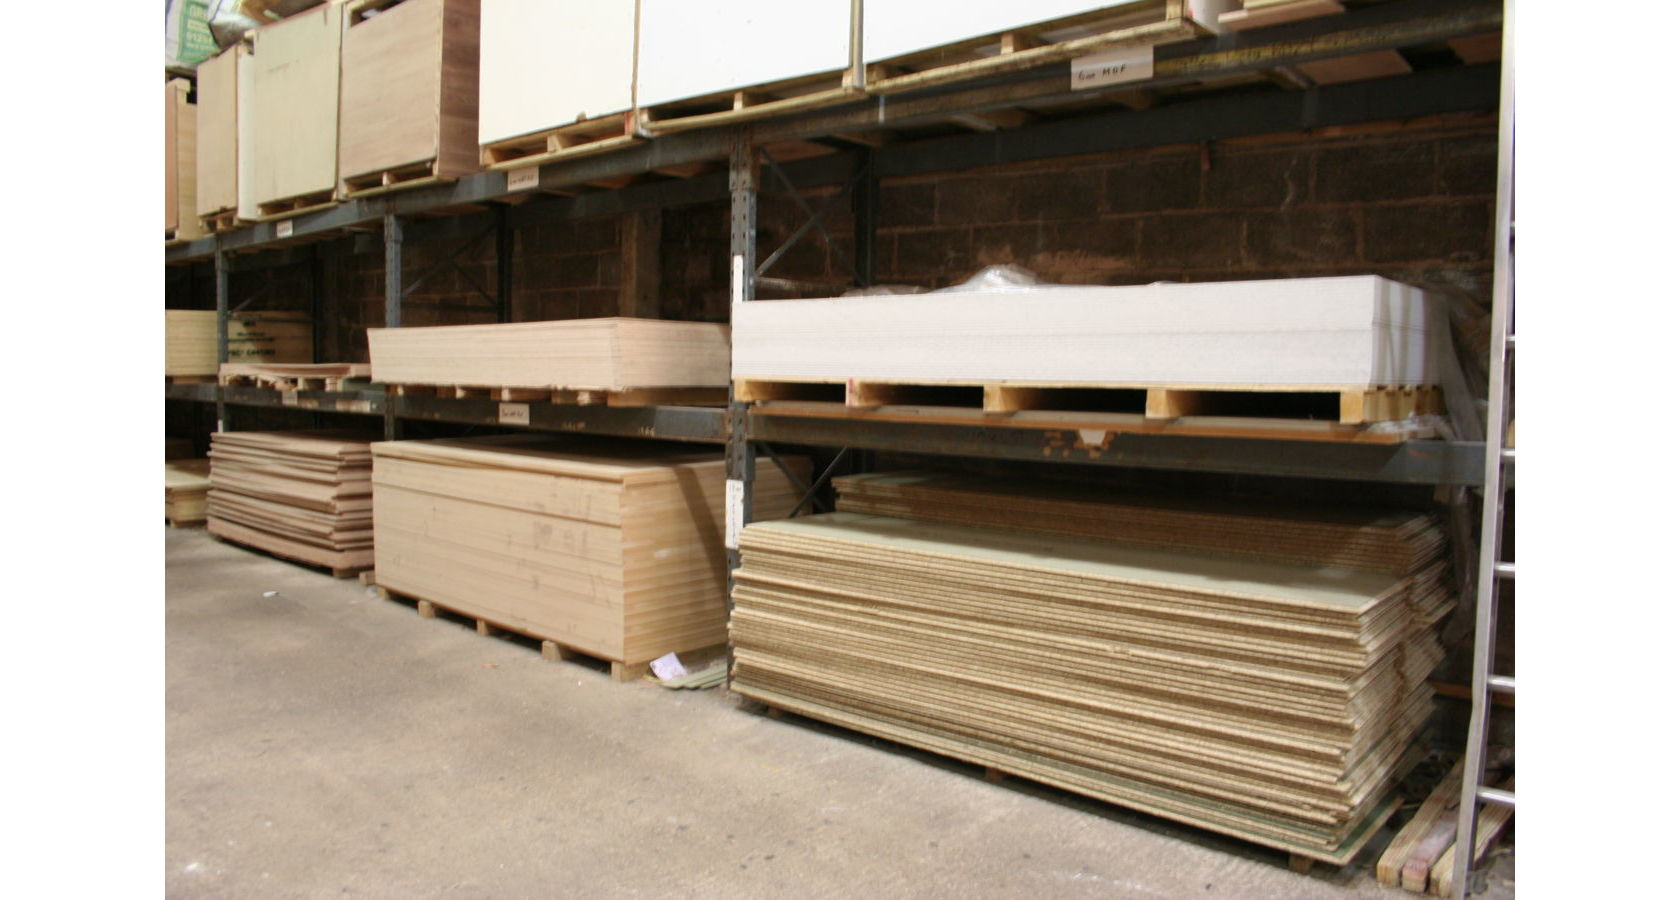 Fermacell & Chipboard Racks; Image 9433